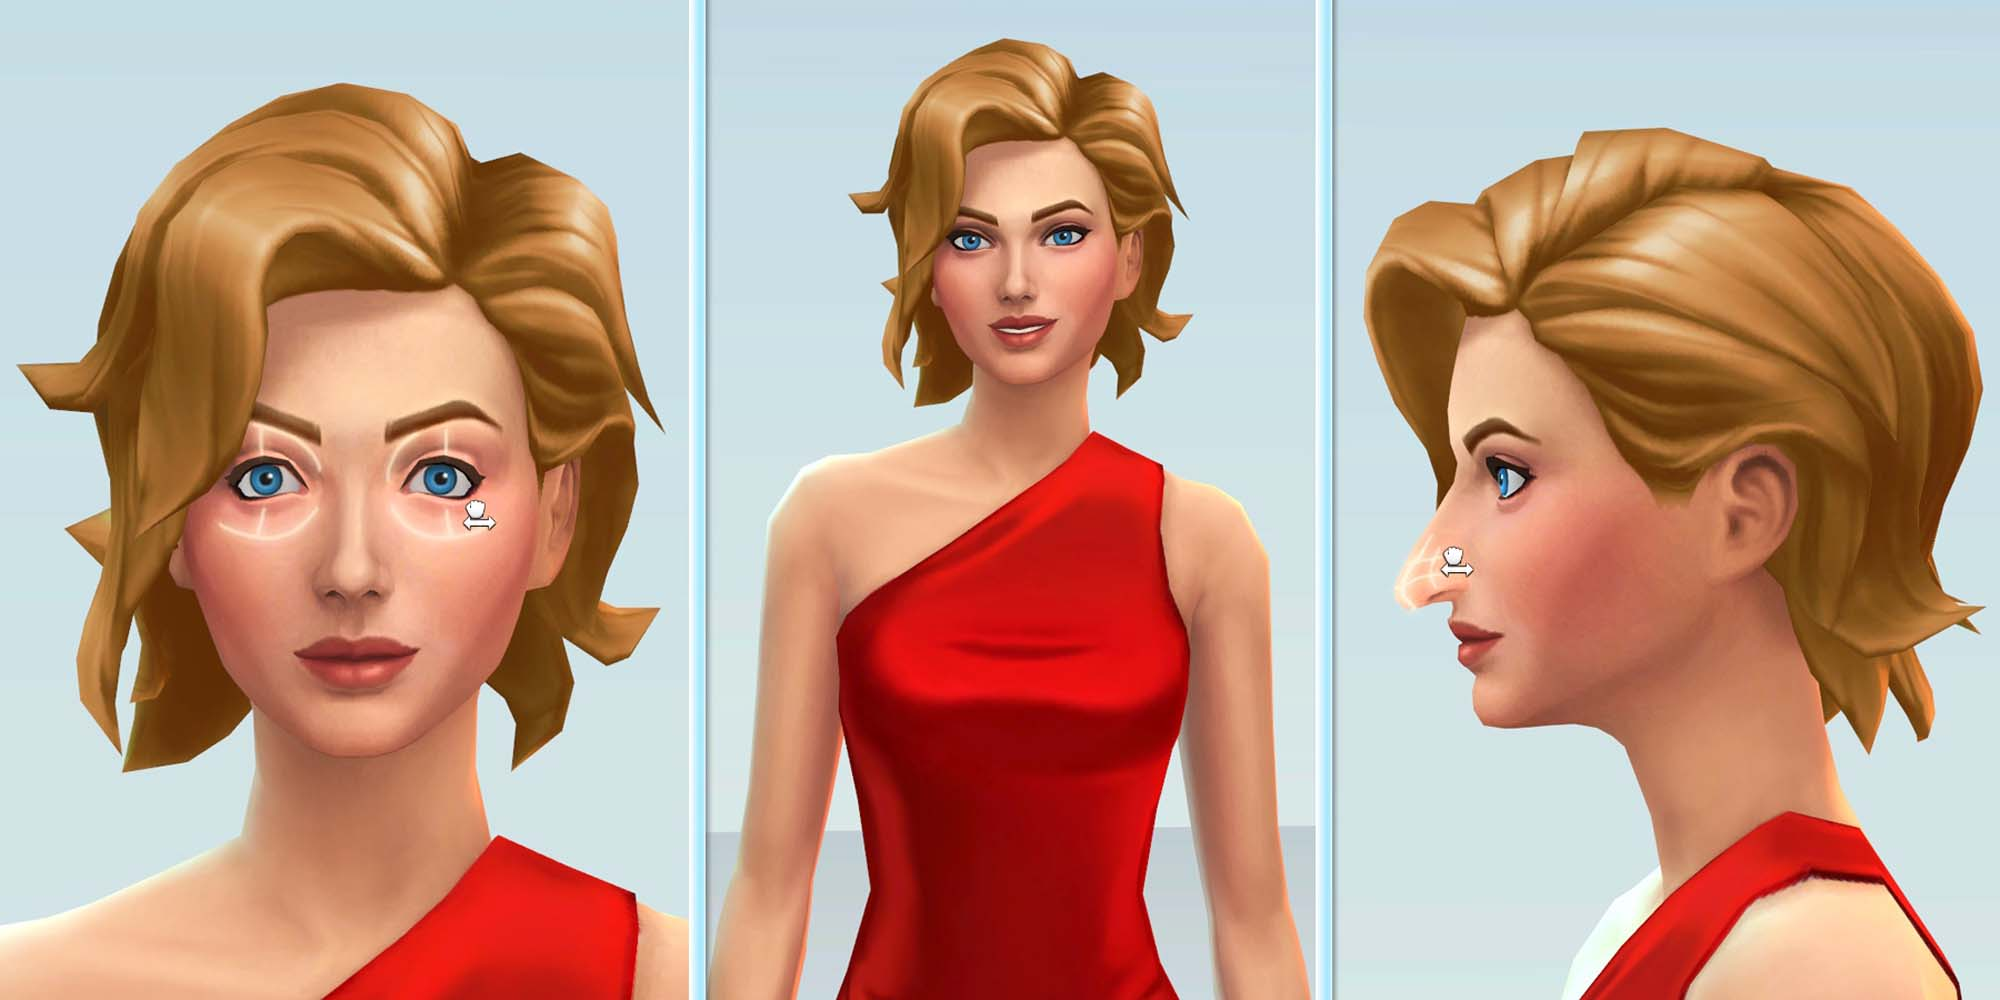 the sims 4 s impressive character creator is the new gold standard